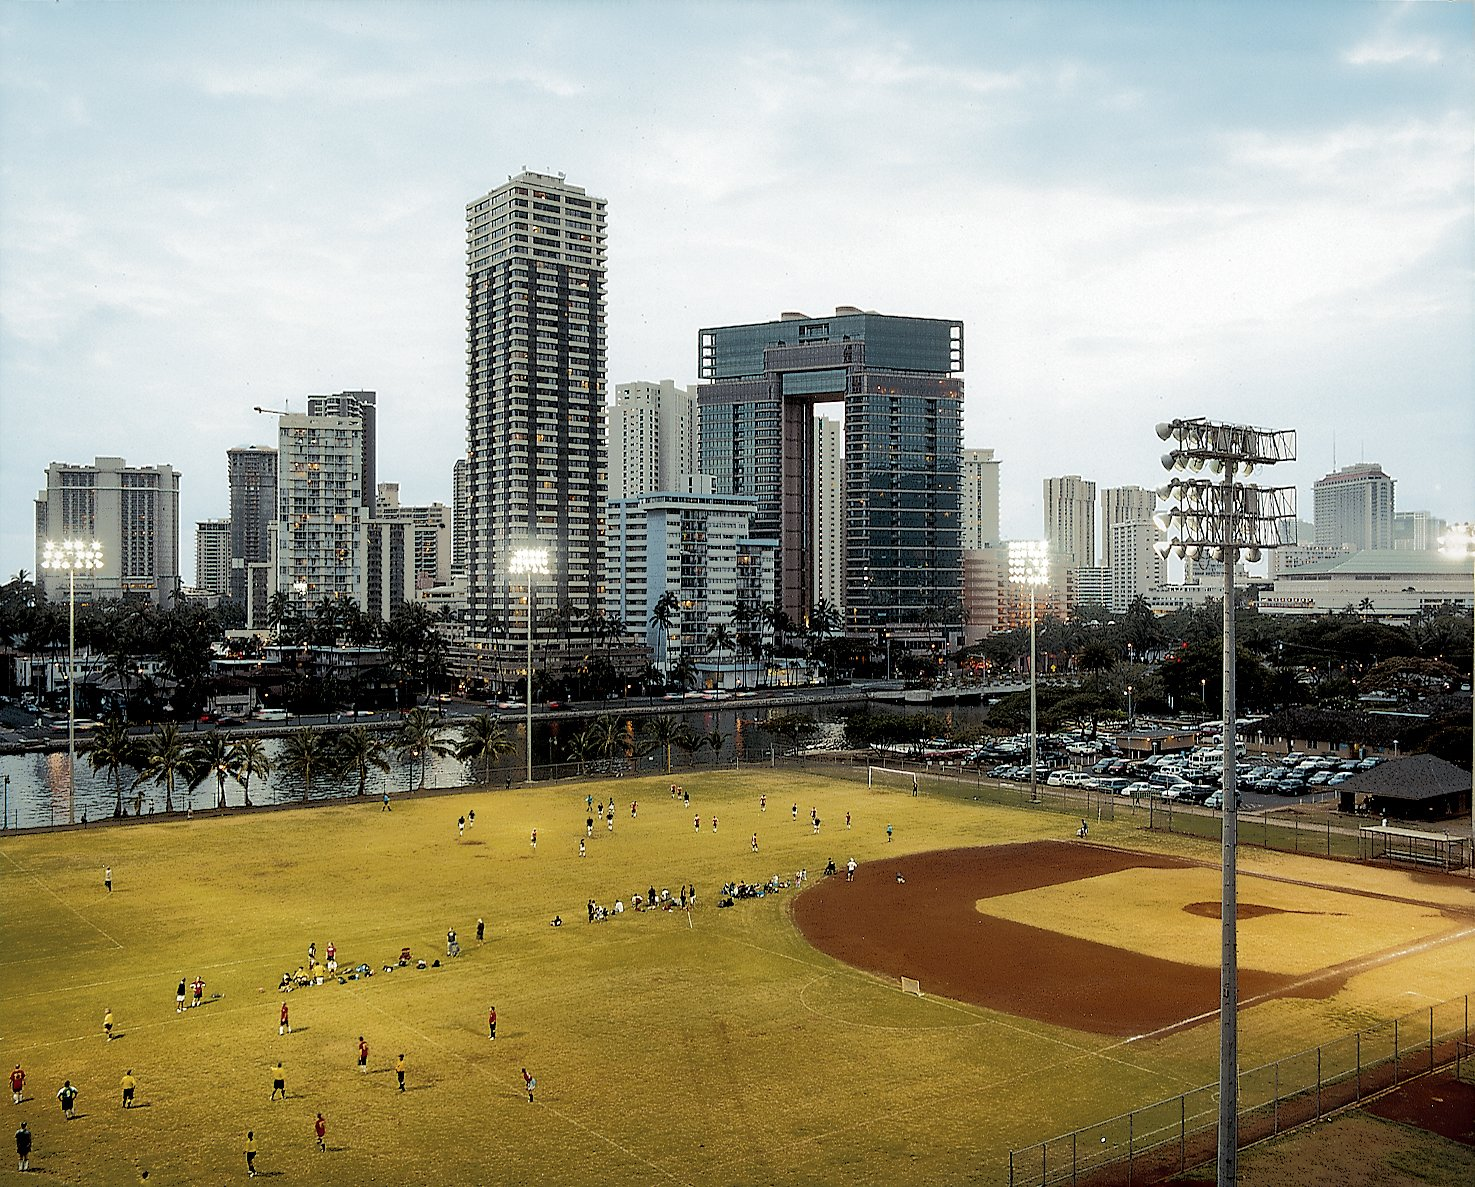 In the shadow of Waikiki's high-rises, a twilight soccer game unfolds at the Ala Wai Neighborhood Park. The now-polluted Ala Wai Canal was created in the 1920s to drain the swampland that would become Waikiki.  Photo 1 of 16 in Honolulu, Hawaii